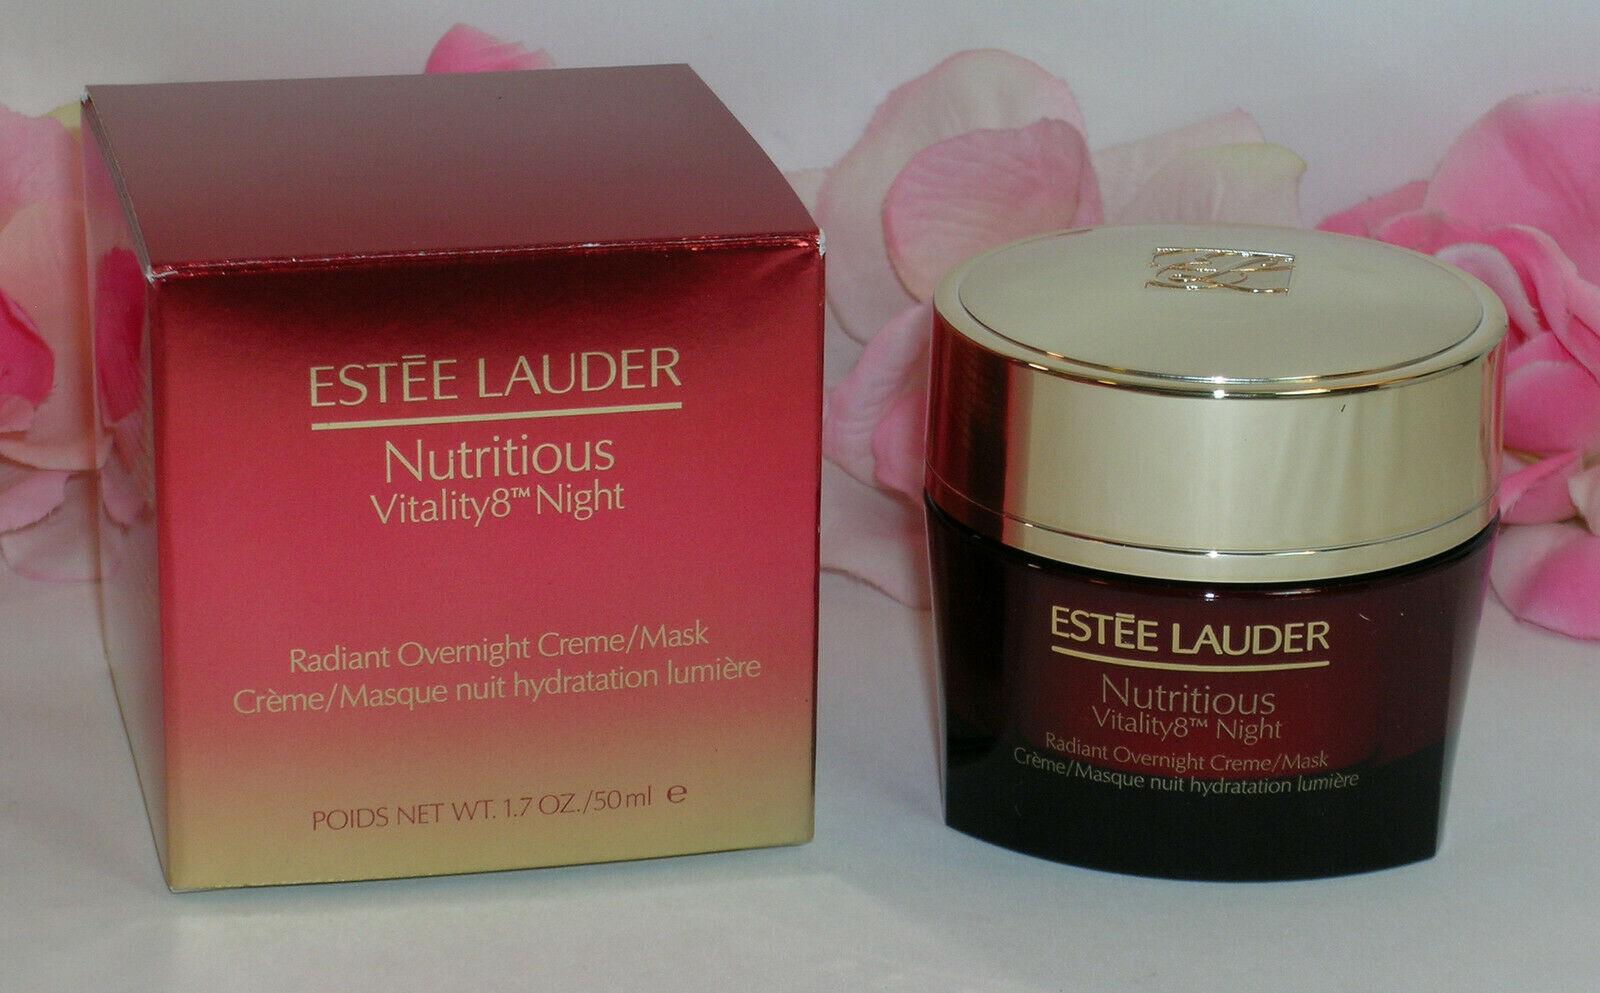 Primary image for New Estee Lauder Nutritious Vitality8 Radiant Overnight Creme / Mask 1.7oz 50 ml